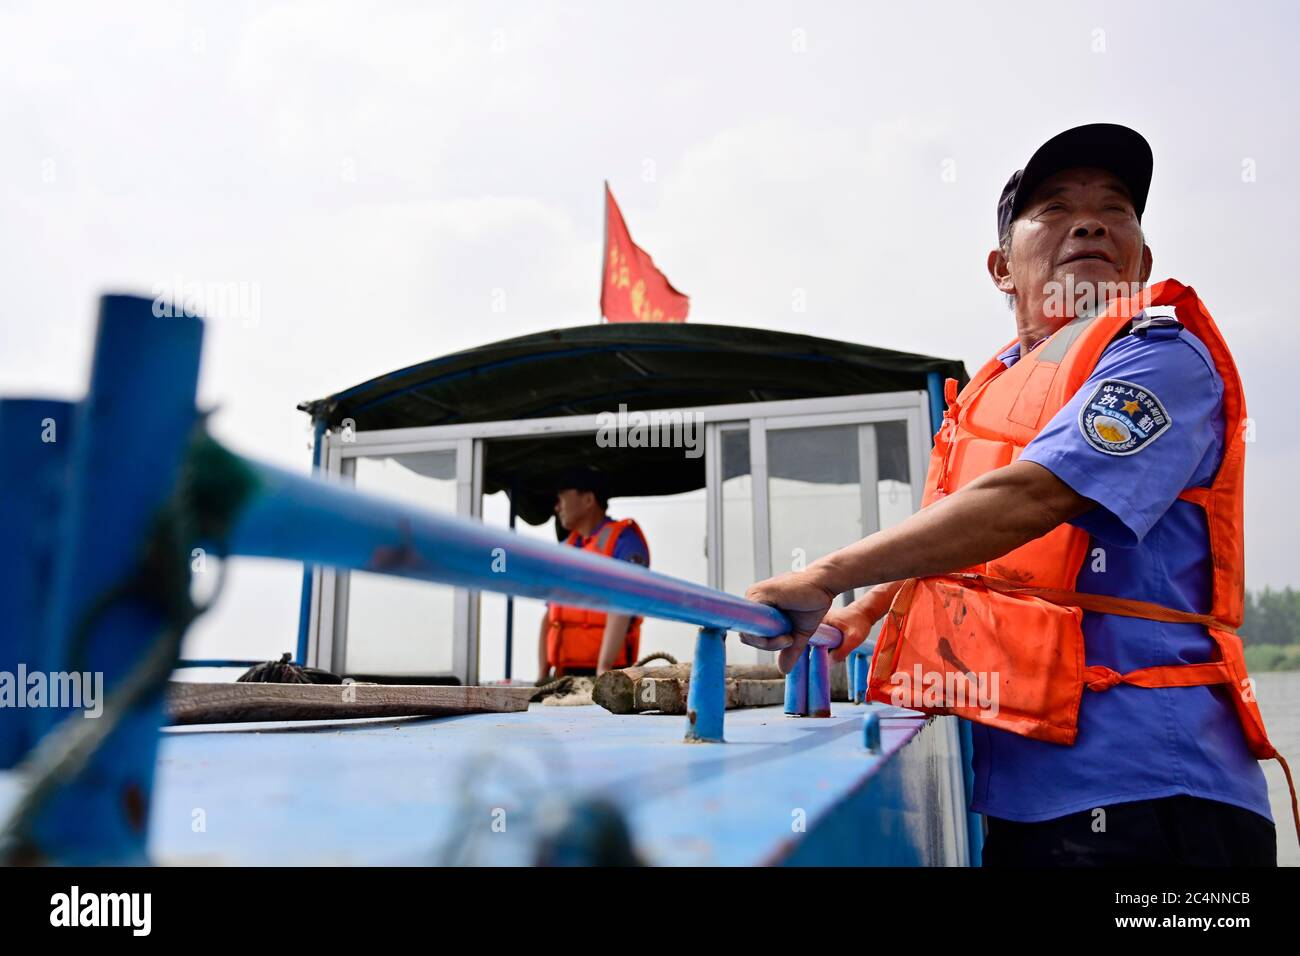 (200628) -- NANCHANG, June 28, 2020 (Xinhua) -- Wu Houchun, an ex-fisherman who works at a Yangtze finless porpoise protection team, takes part in a patrol mission on the Poyang Lake in Hukou County, east China's Jiangxi Province, June 8, 2020. Eight of the 11 team members are fishermen-turned finless porpoise protectors who patrol the Poyang Lake on a daily basis. Their missions include dismantling illegal fishing facilities and preventing unlawful activities that damage the Poyang Lake's fisheries resources. China began a 10-year fishing moratorium from the beginning of this year in 332 cons Stock Photo